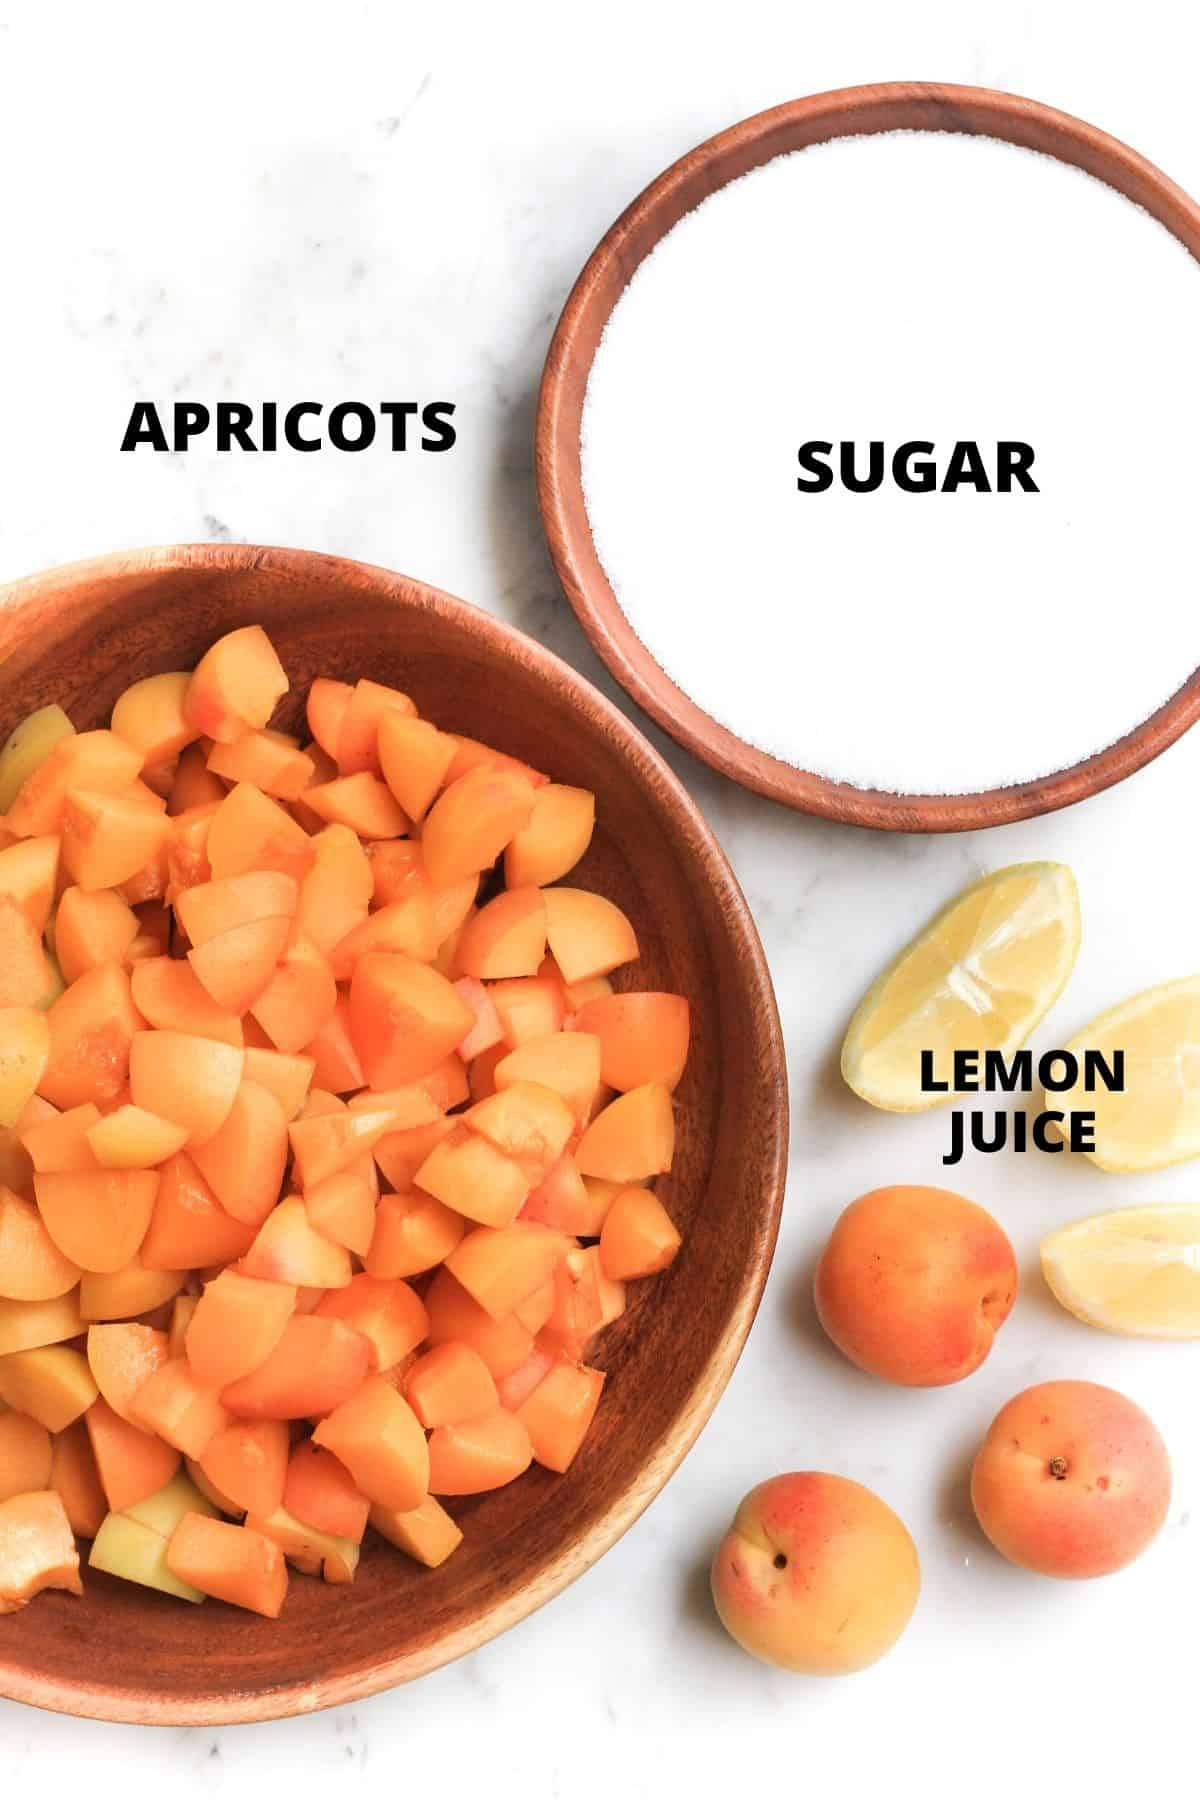 Labeled ingredients for making an apricot jam recipe.